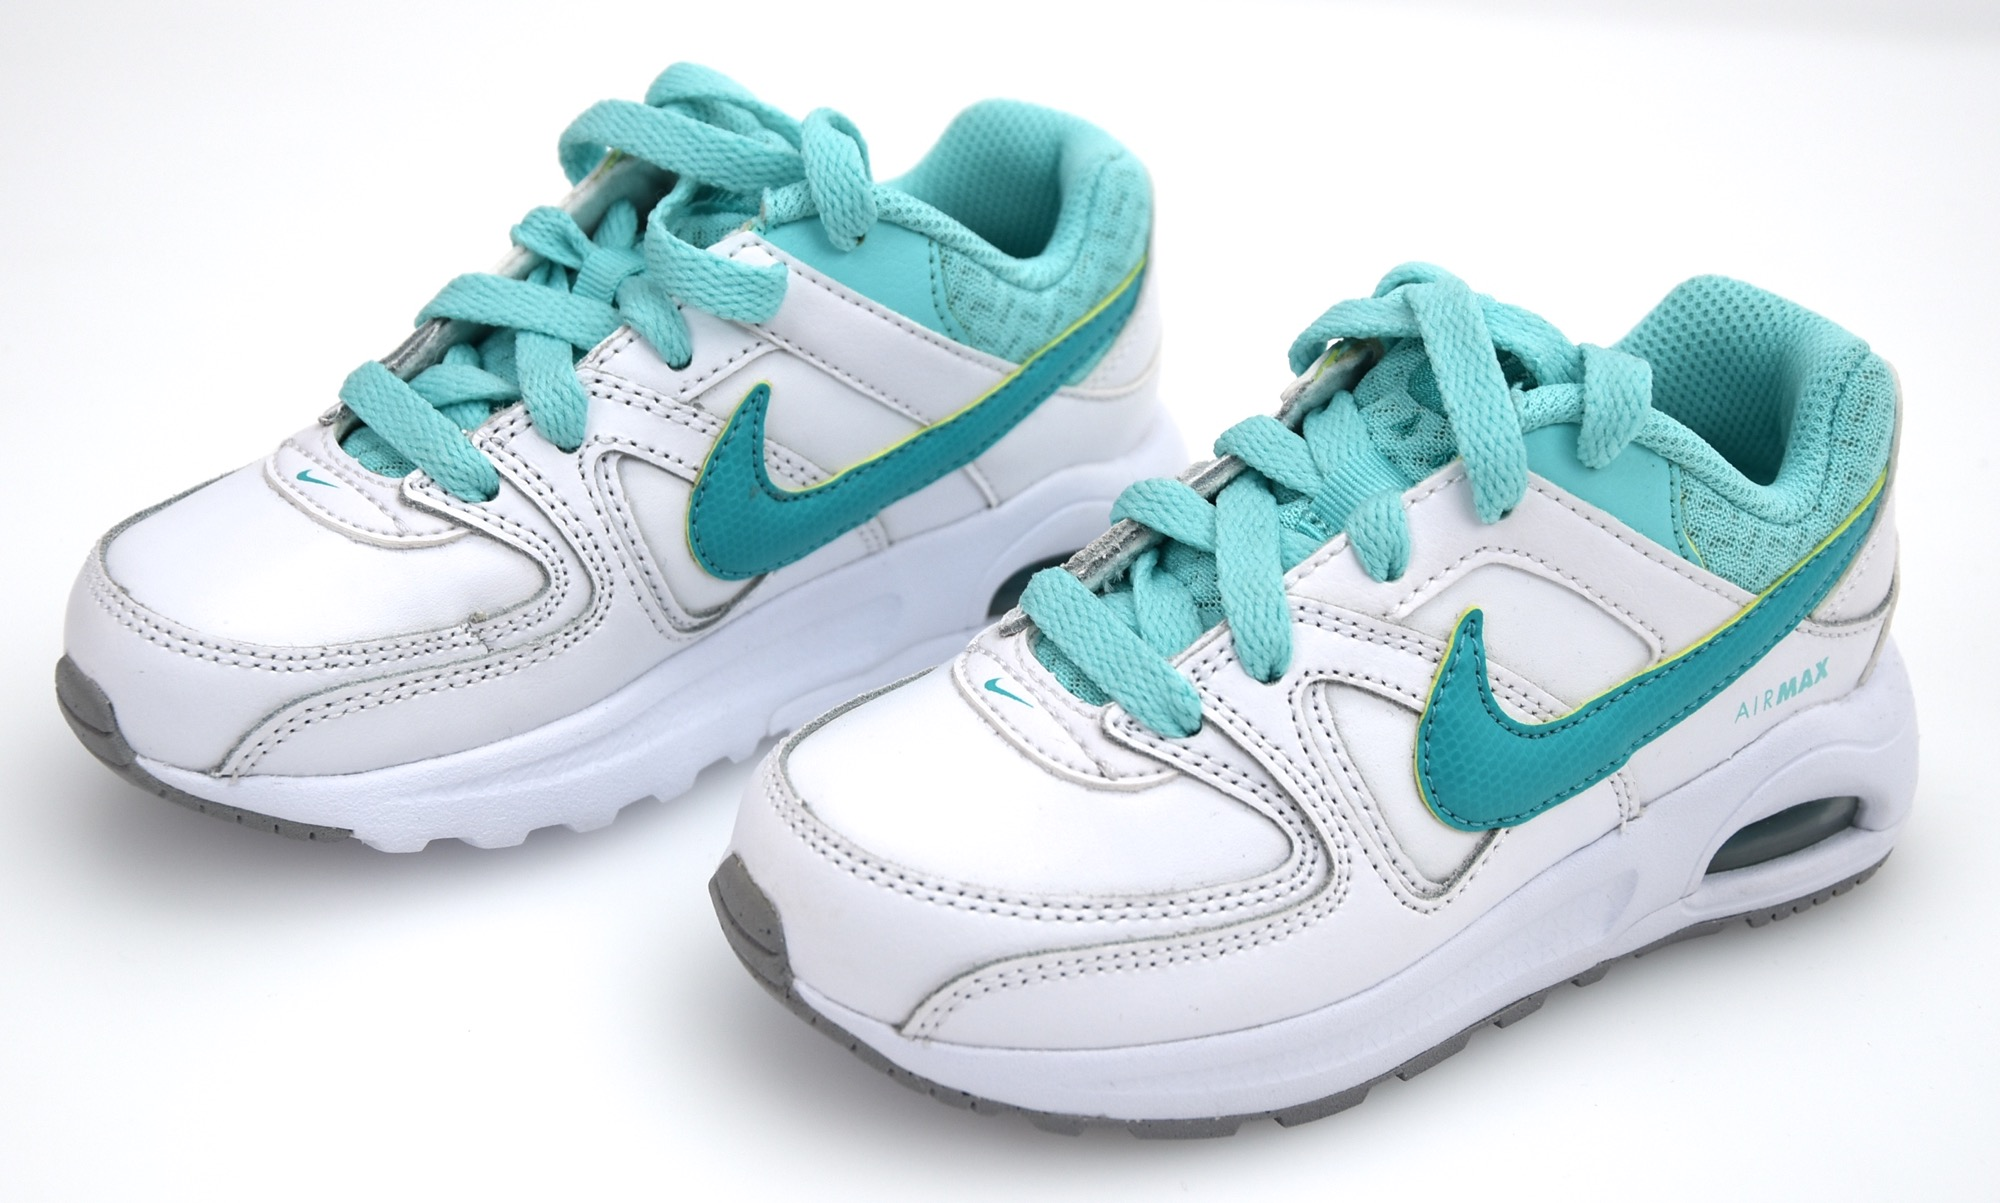 29b4385cbed Details about NIKE JUNIOR GIRL SNEAKER SHOES CASUAL CODE 844356 133 AIR MAX  COMMAND FLEX LTR